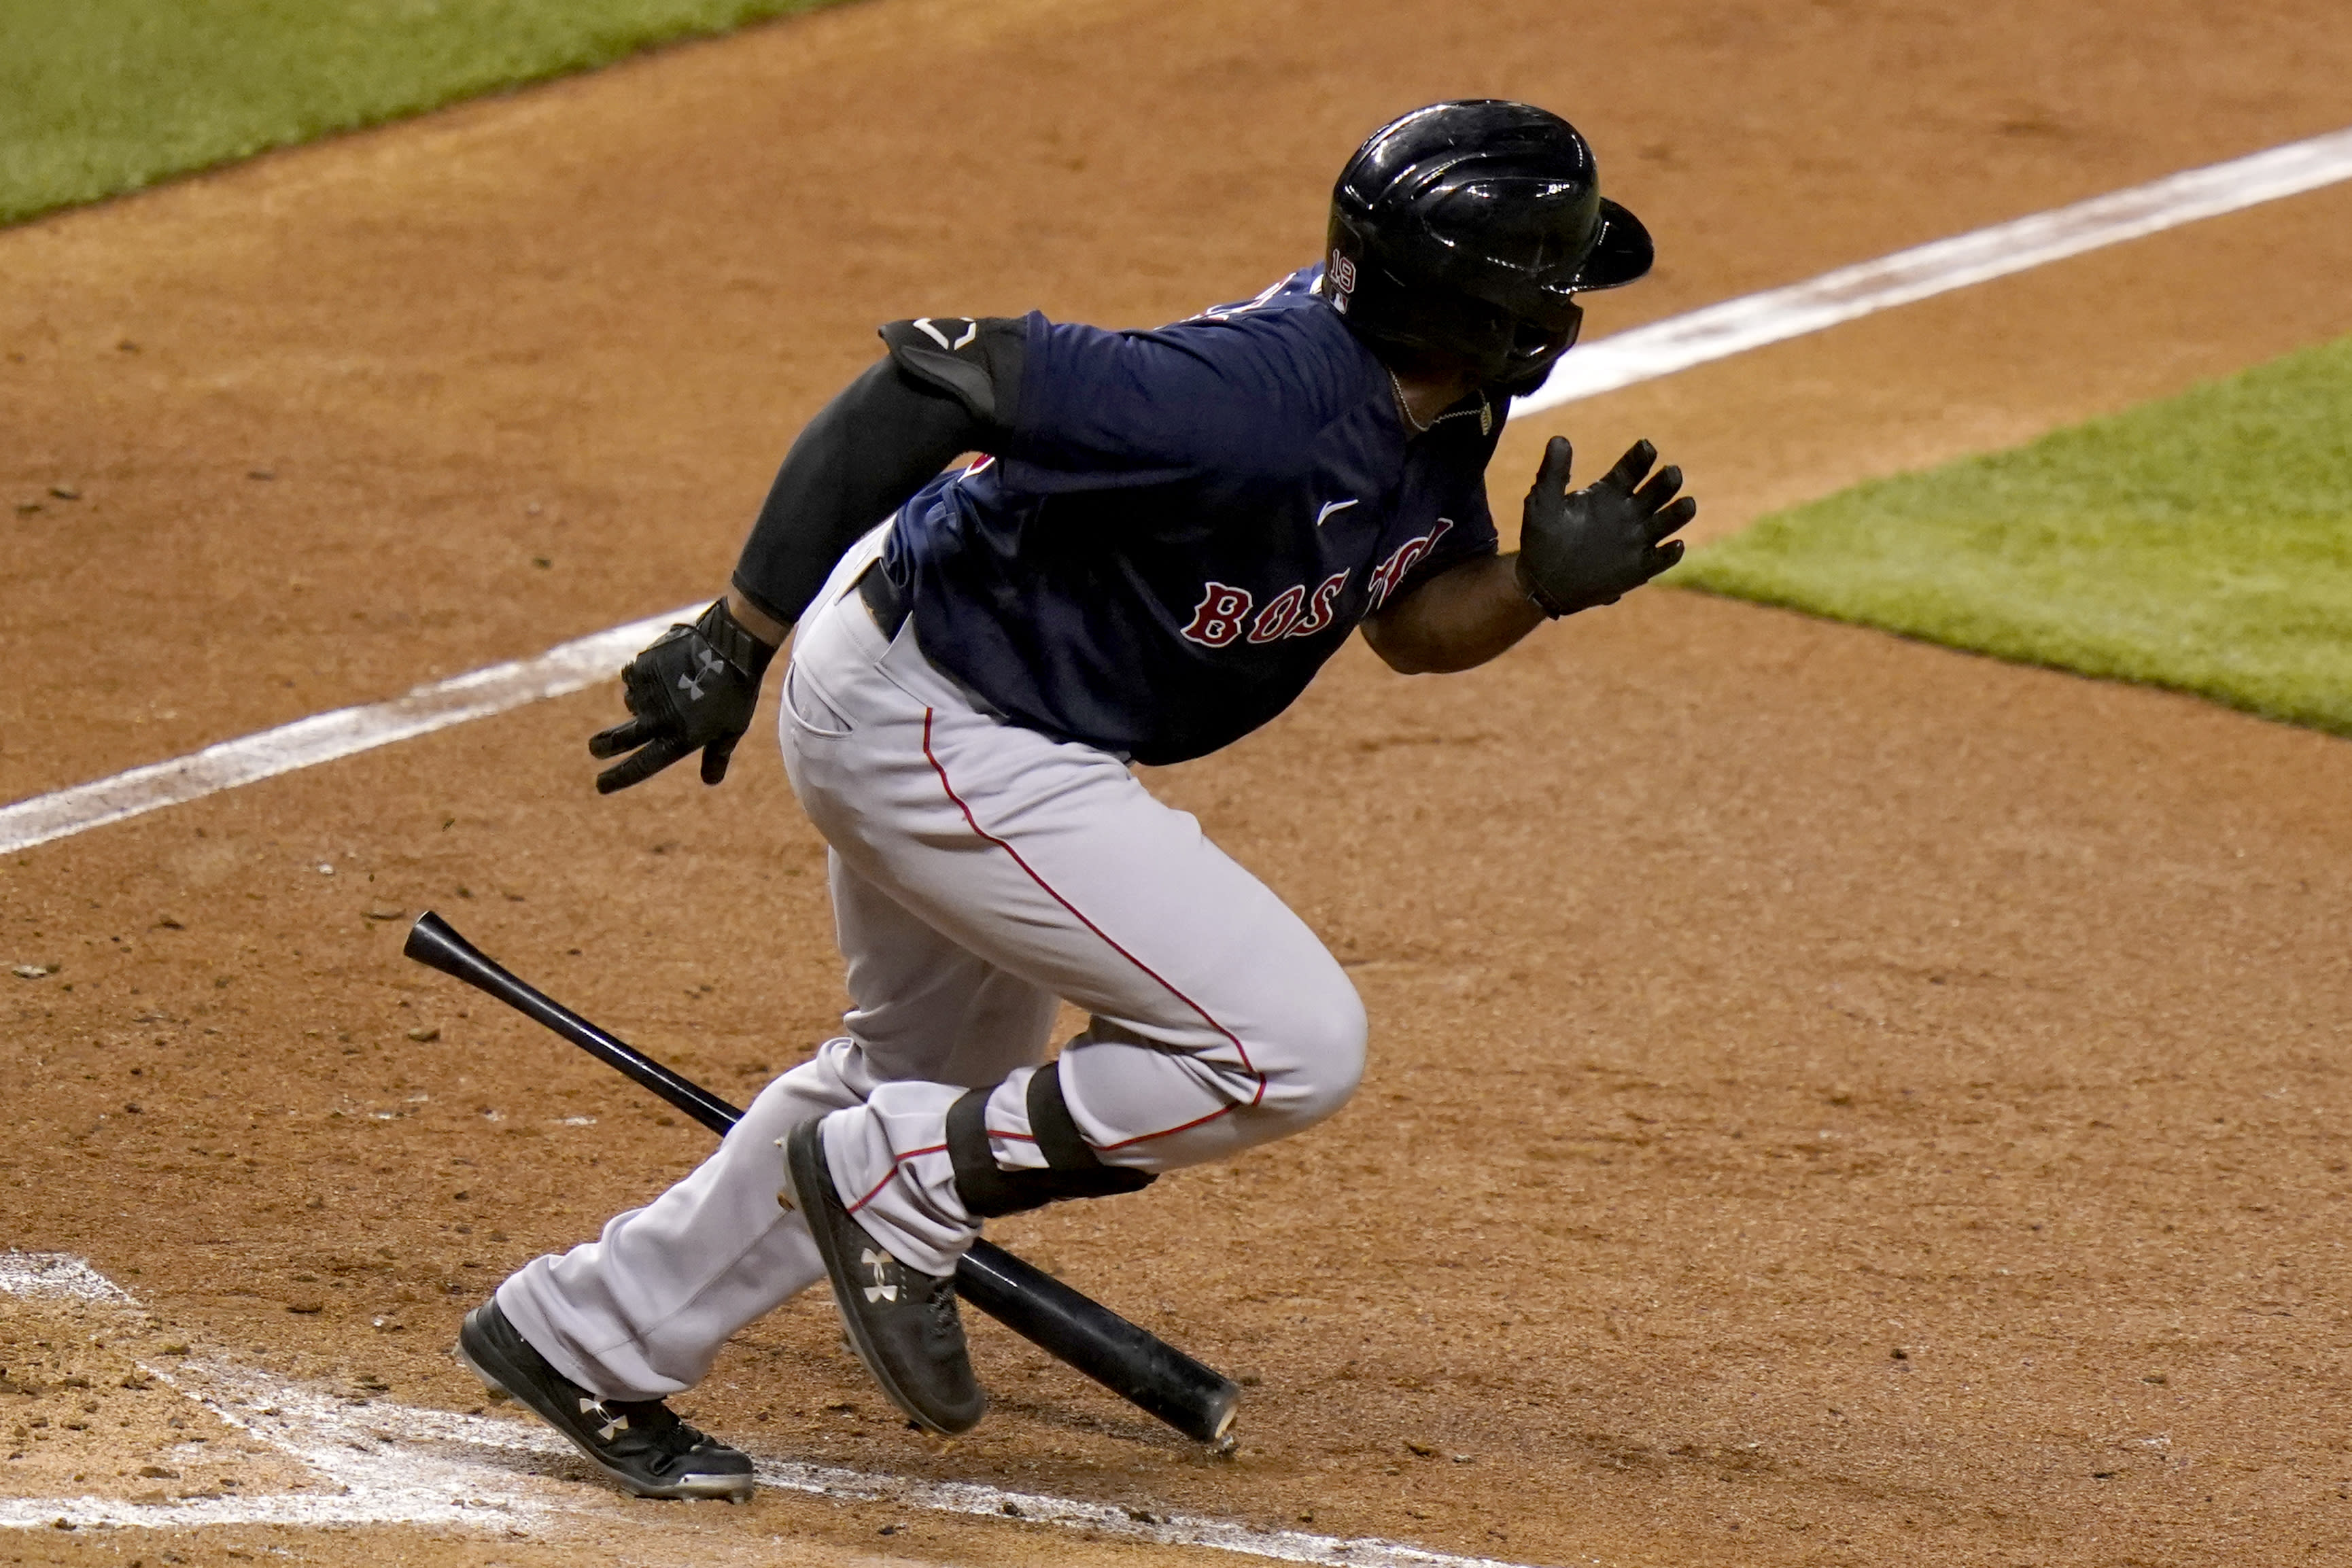 Boston Red Sox's Jackie Bradley Jr. runs after hitting a double to score Xander Bogaerts during the sixth inning of a baseball game against the Miami Marlins, Tuesday, Sept. 15, 2020, in Miami. (AP Photo/Lynne Sladky)